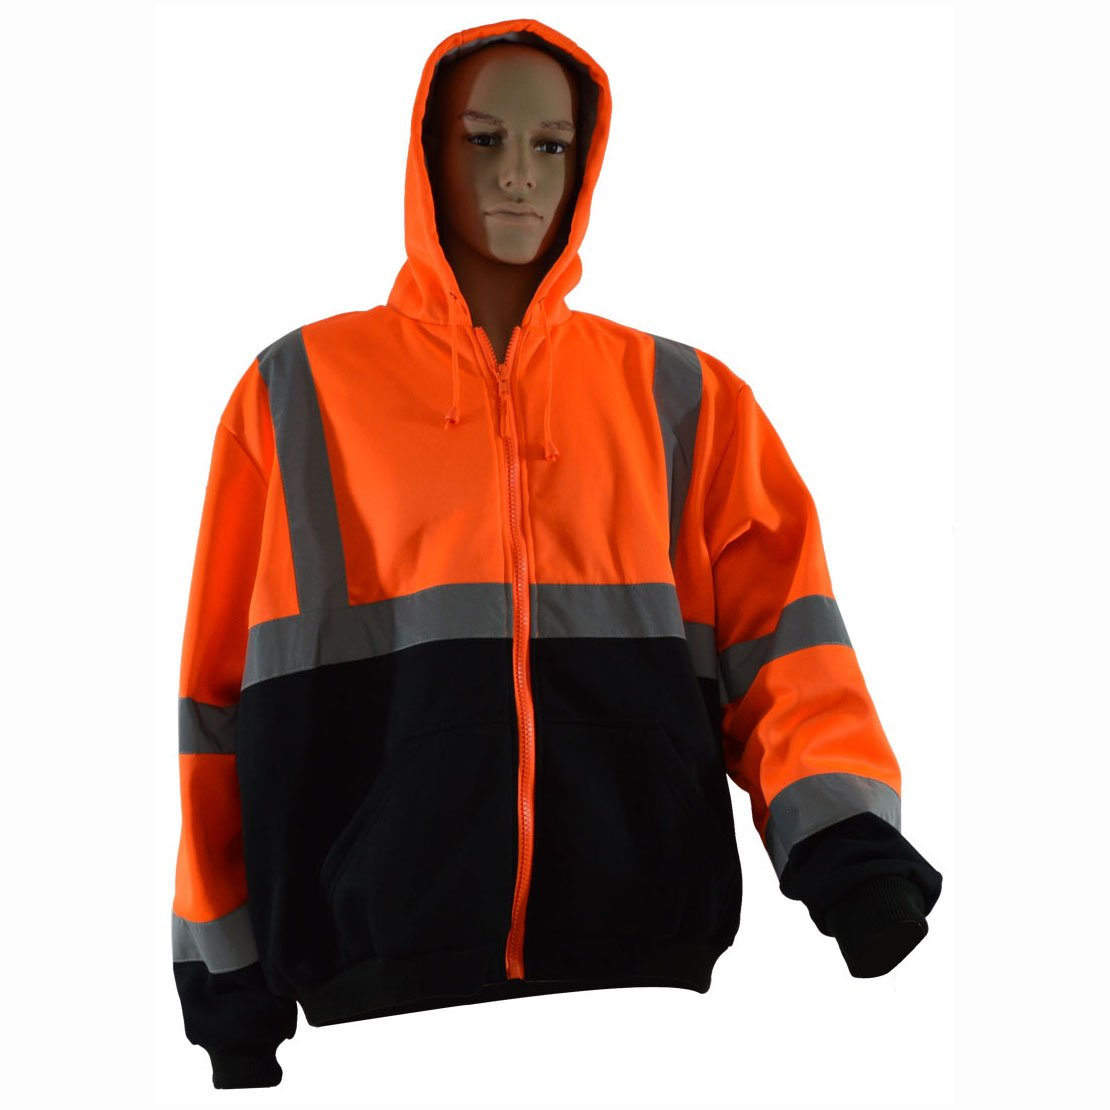 Petra Roc OBHSW-C3-L Thermal Lined Sweatshirt Hoodie Orange//Black Two Tone Zipper Closure 2 Slash Pockets ANSI 107-Class 3 L